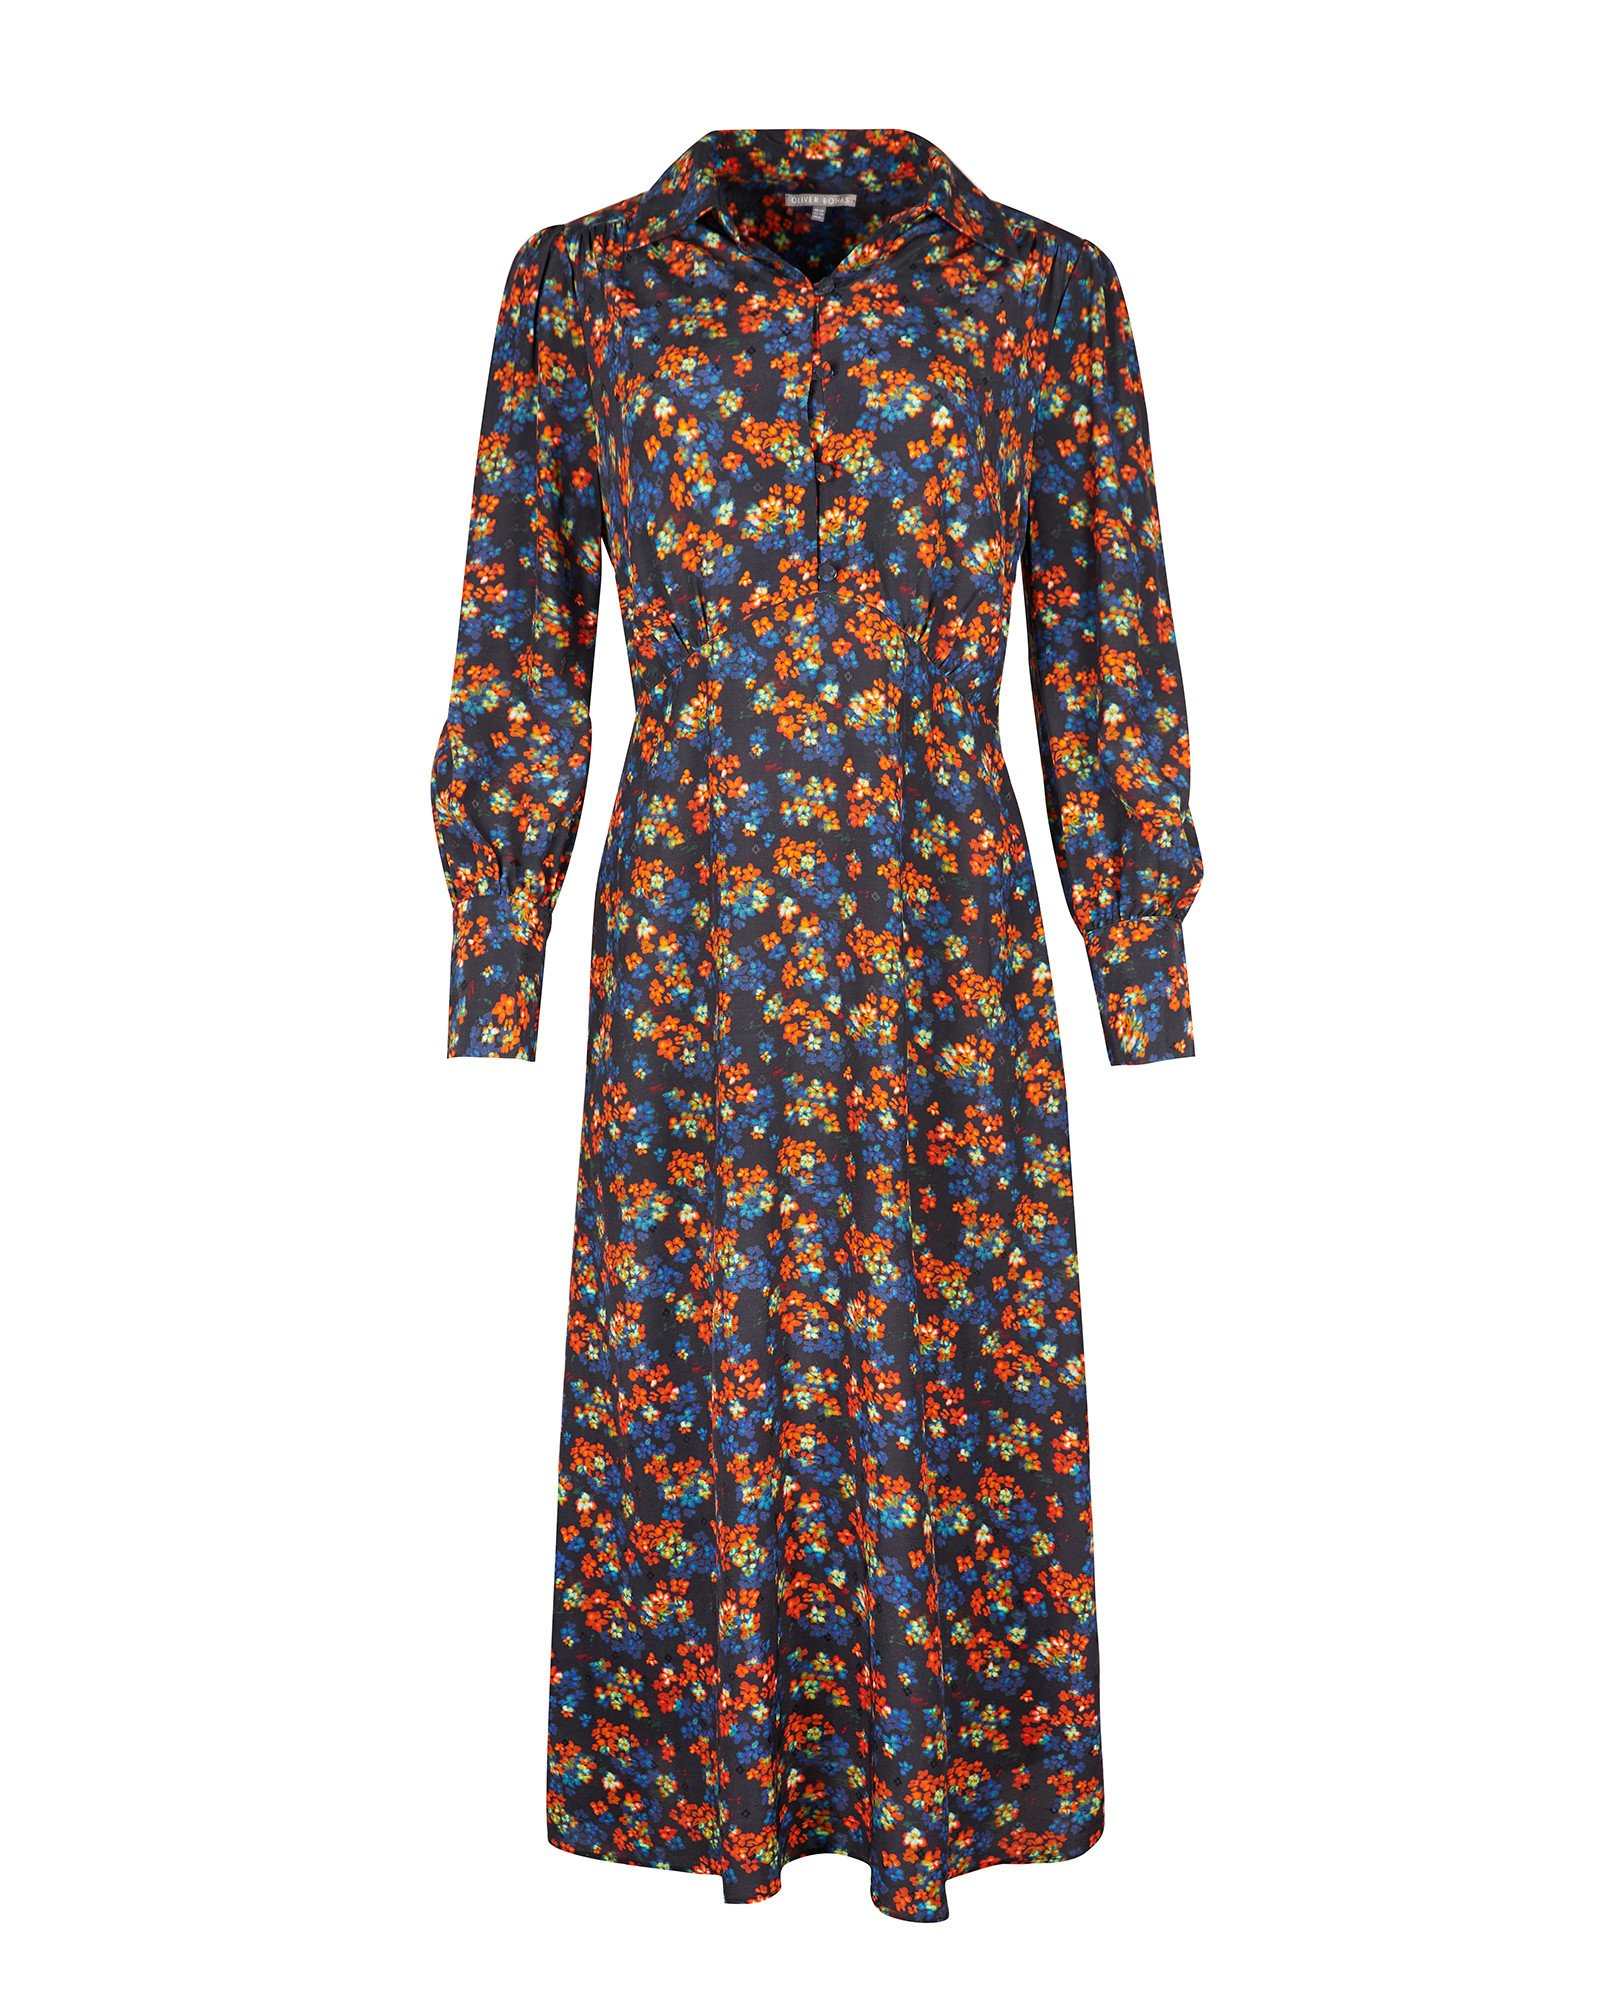 Ditsy Floral Orange & Black Midi Shirt Dress